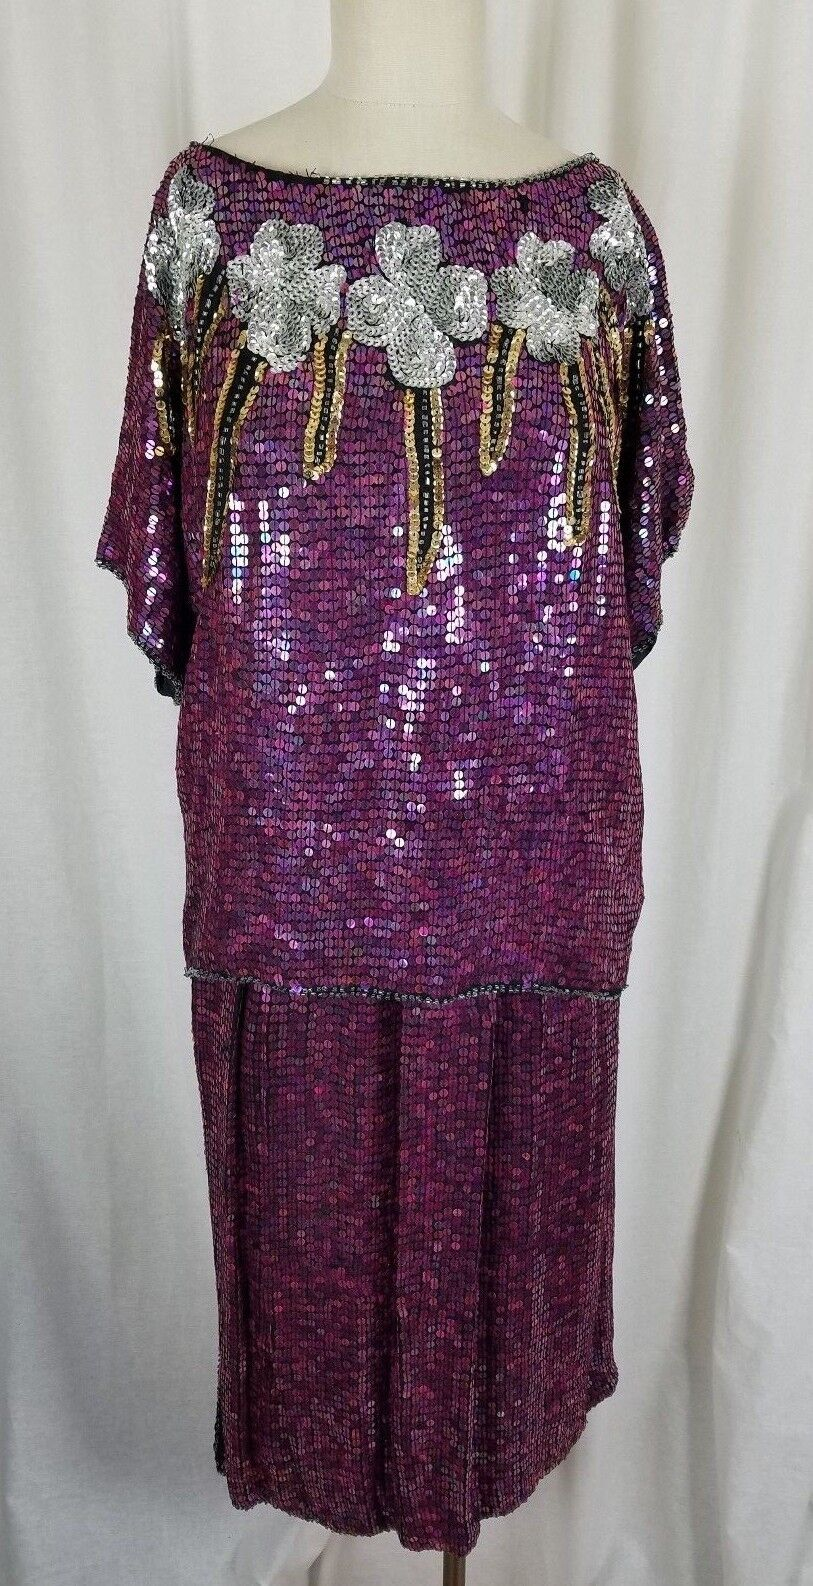 Vintage Infashions Heavily Beaded Sequined Skirt Top Suit Set Outfit Womens S